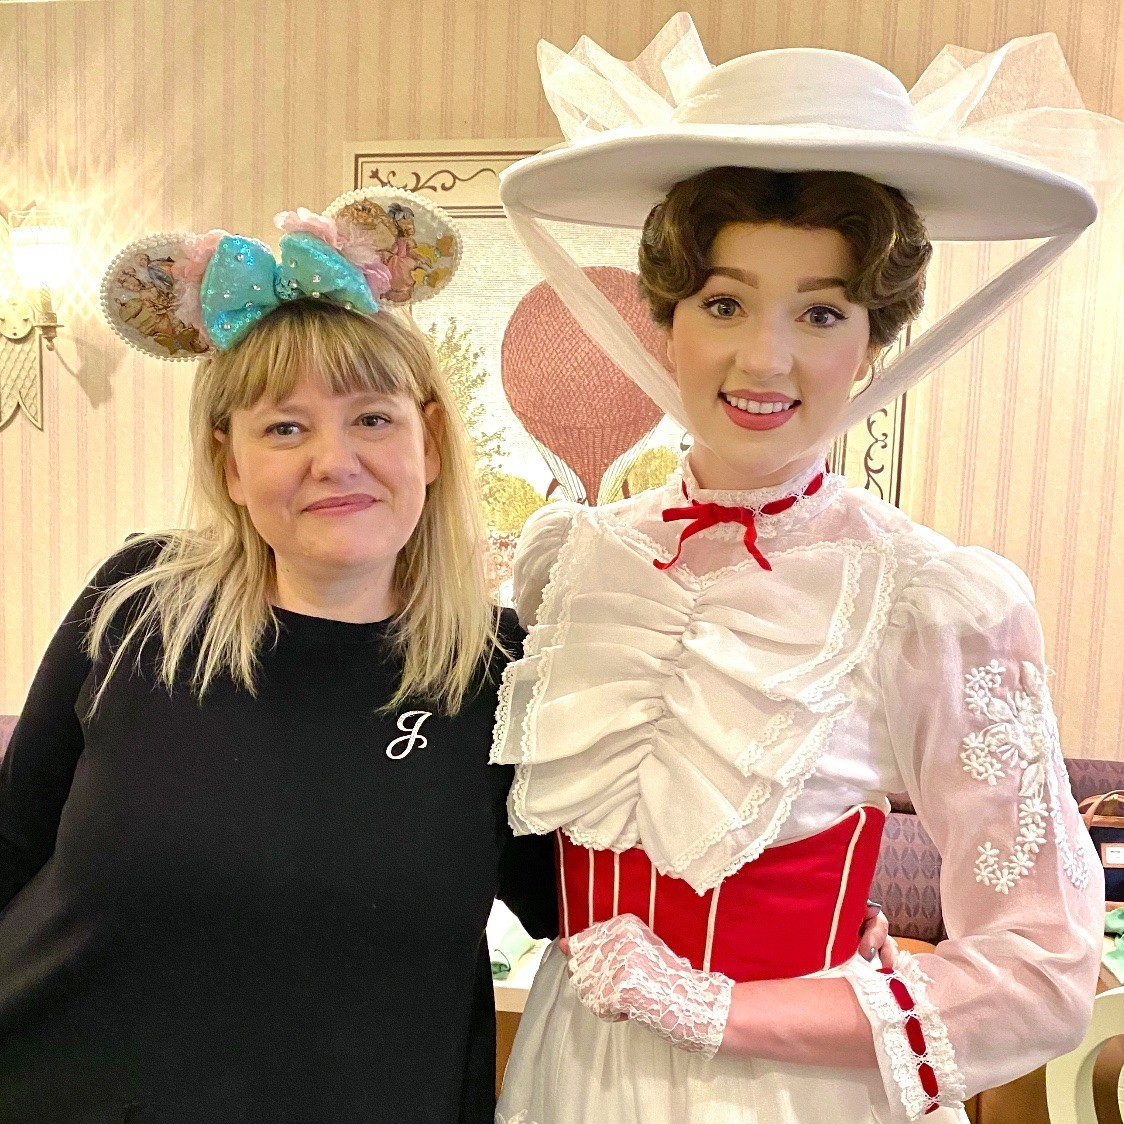 Visiting with Mary Poppins at 1900 Park Fare